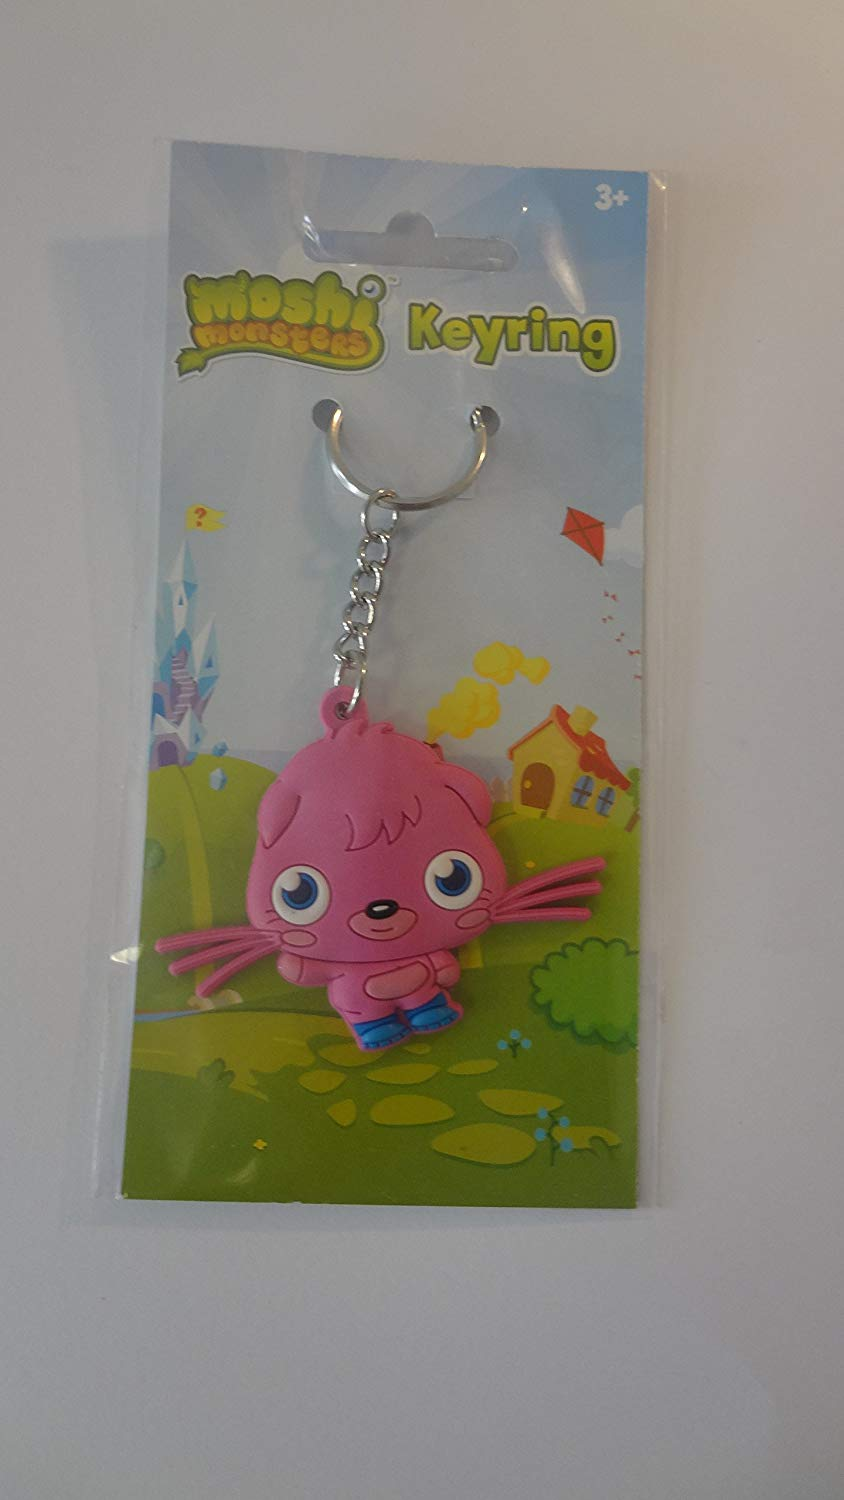 Mind Cey - Porta avi con Diavlo, personaggio di Moshi Monsters